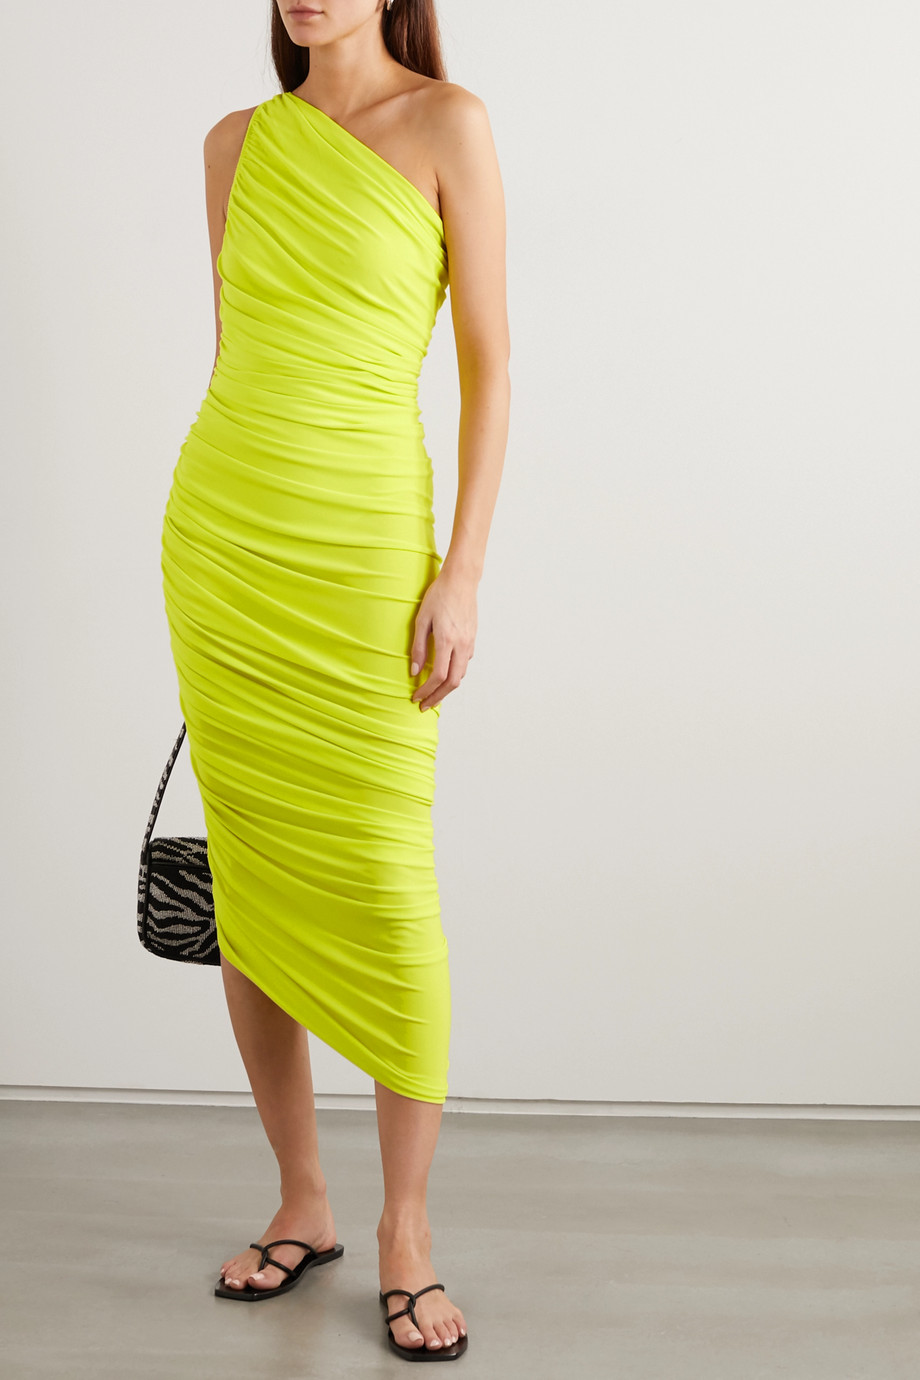 Norma Kamali Diana one-shoulder stretch-jersey midi dress